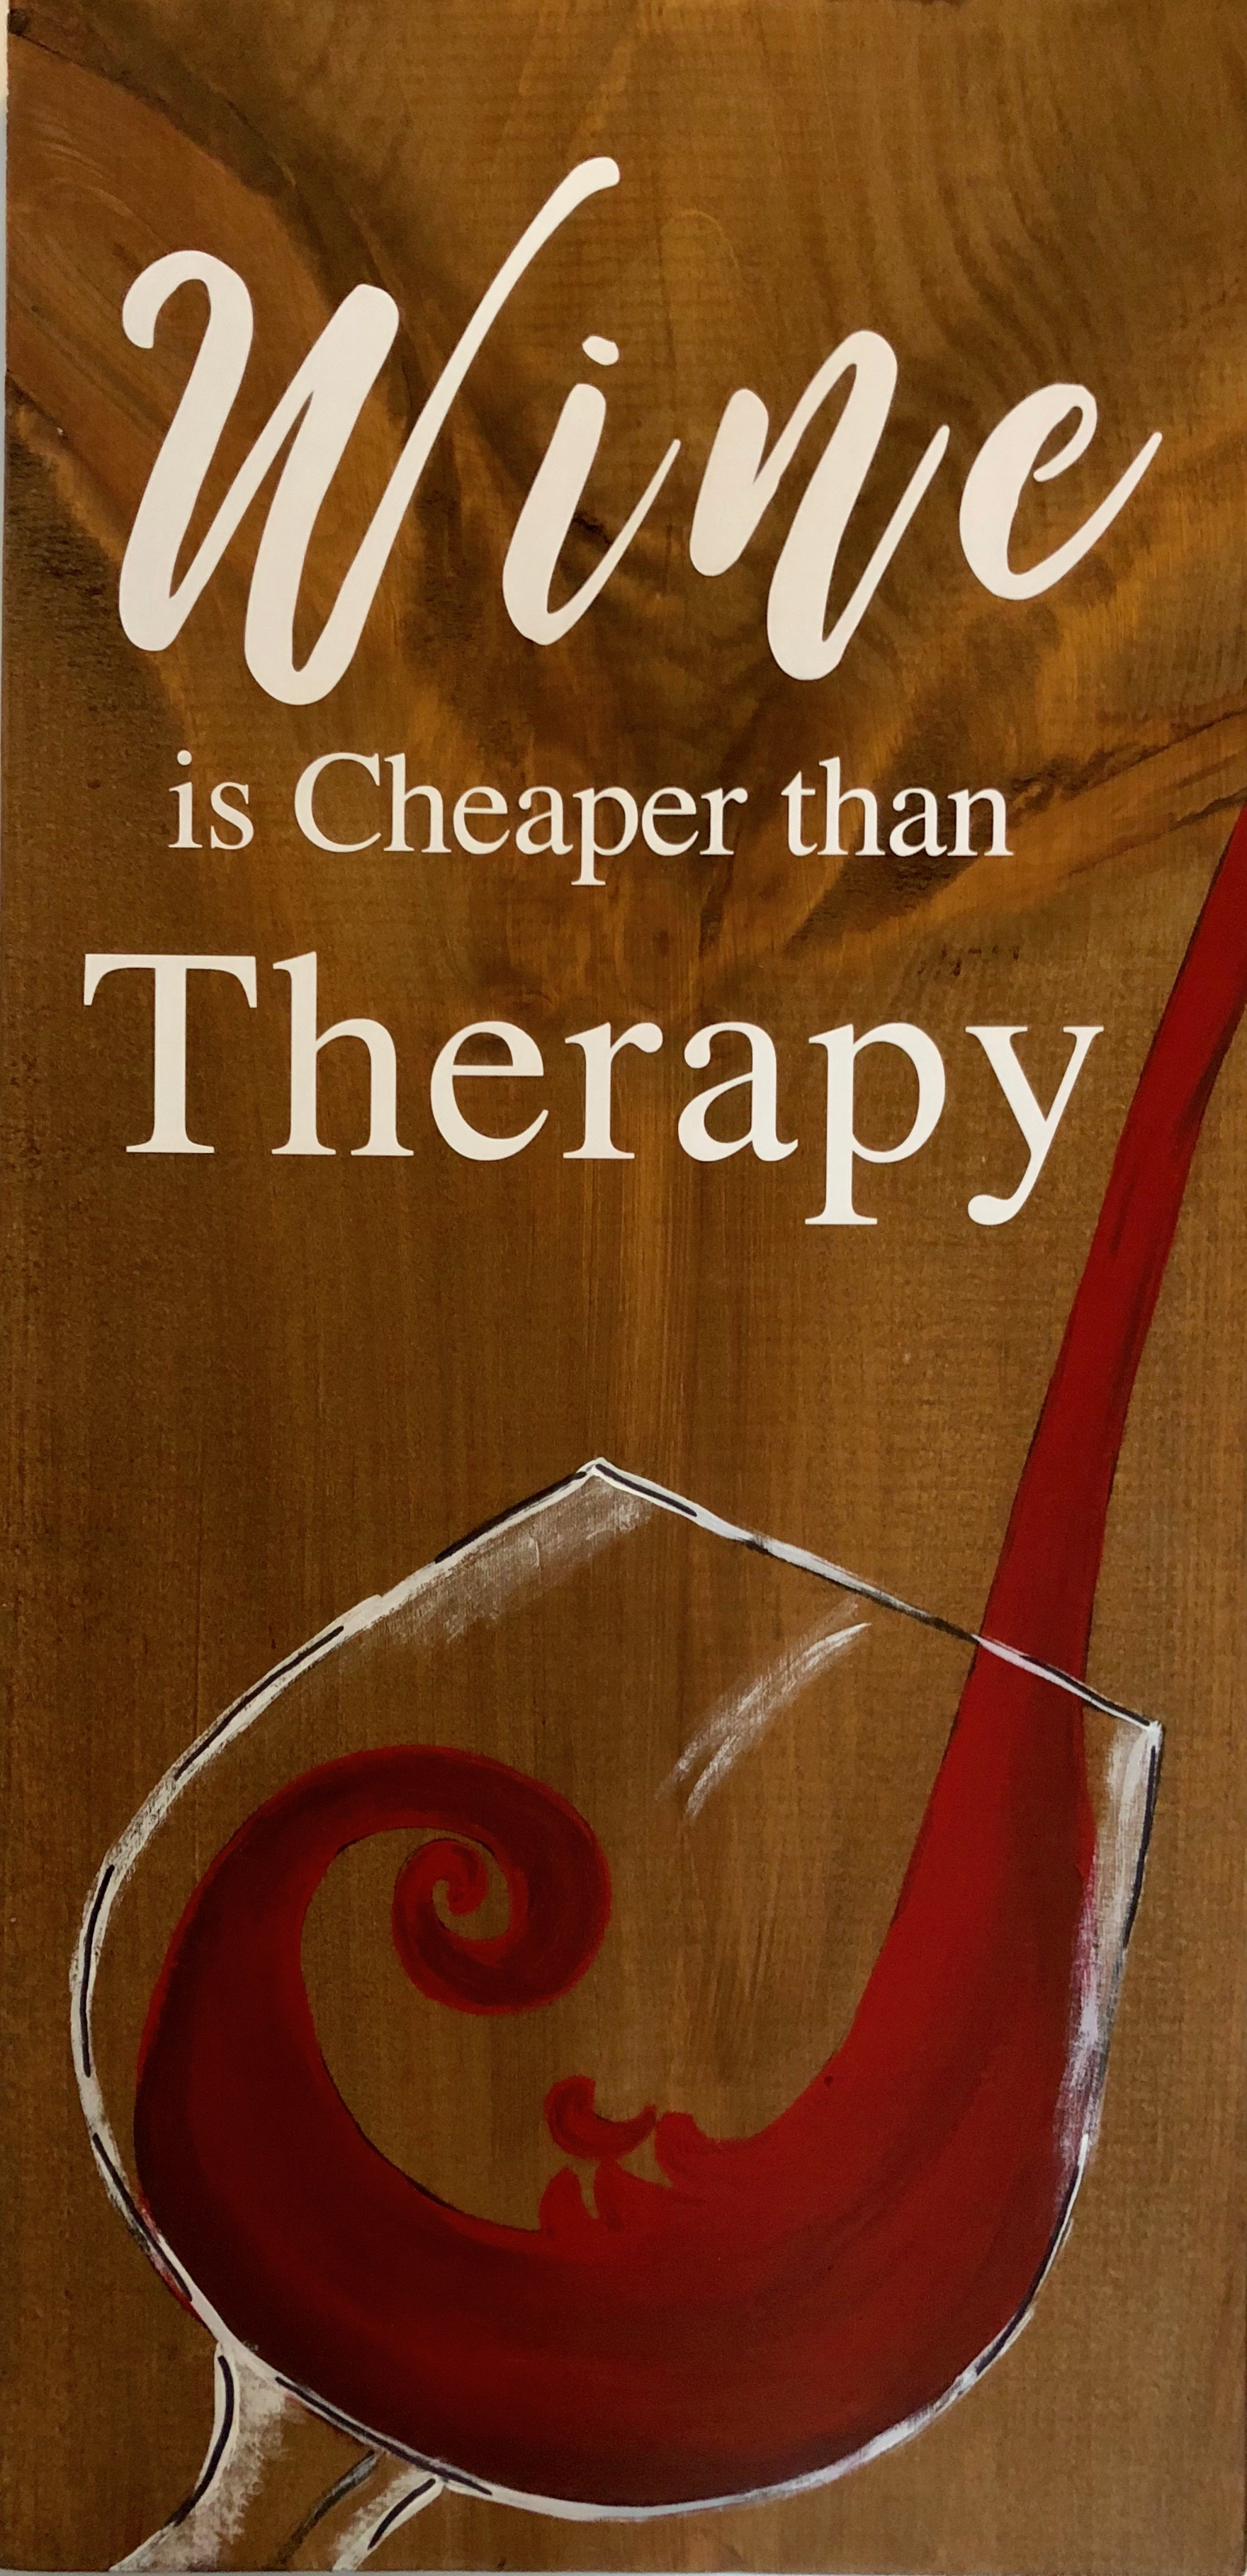 Wine Cheaper Than Therapy - 10x19""